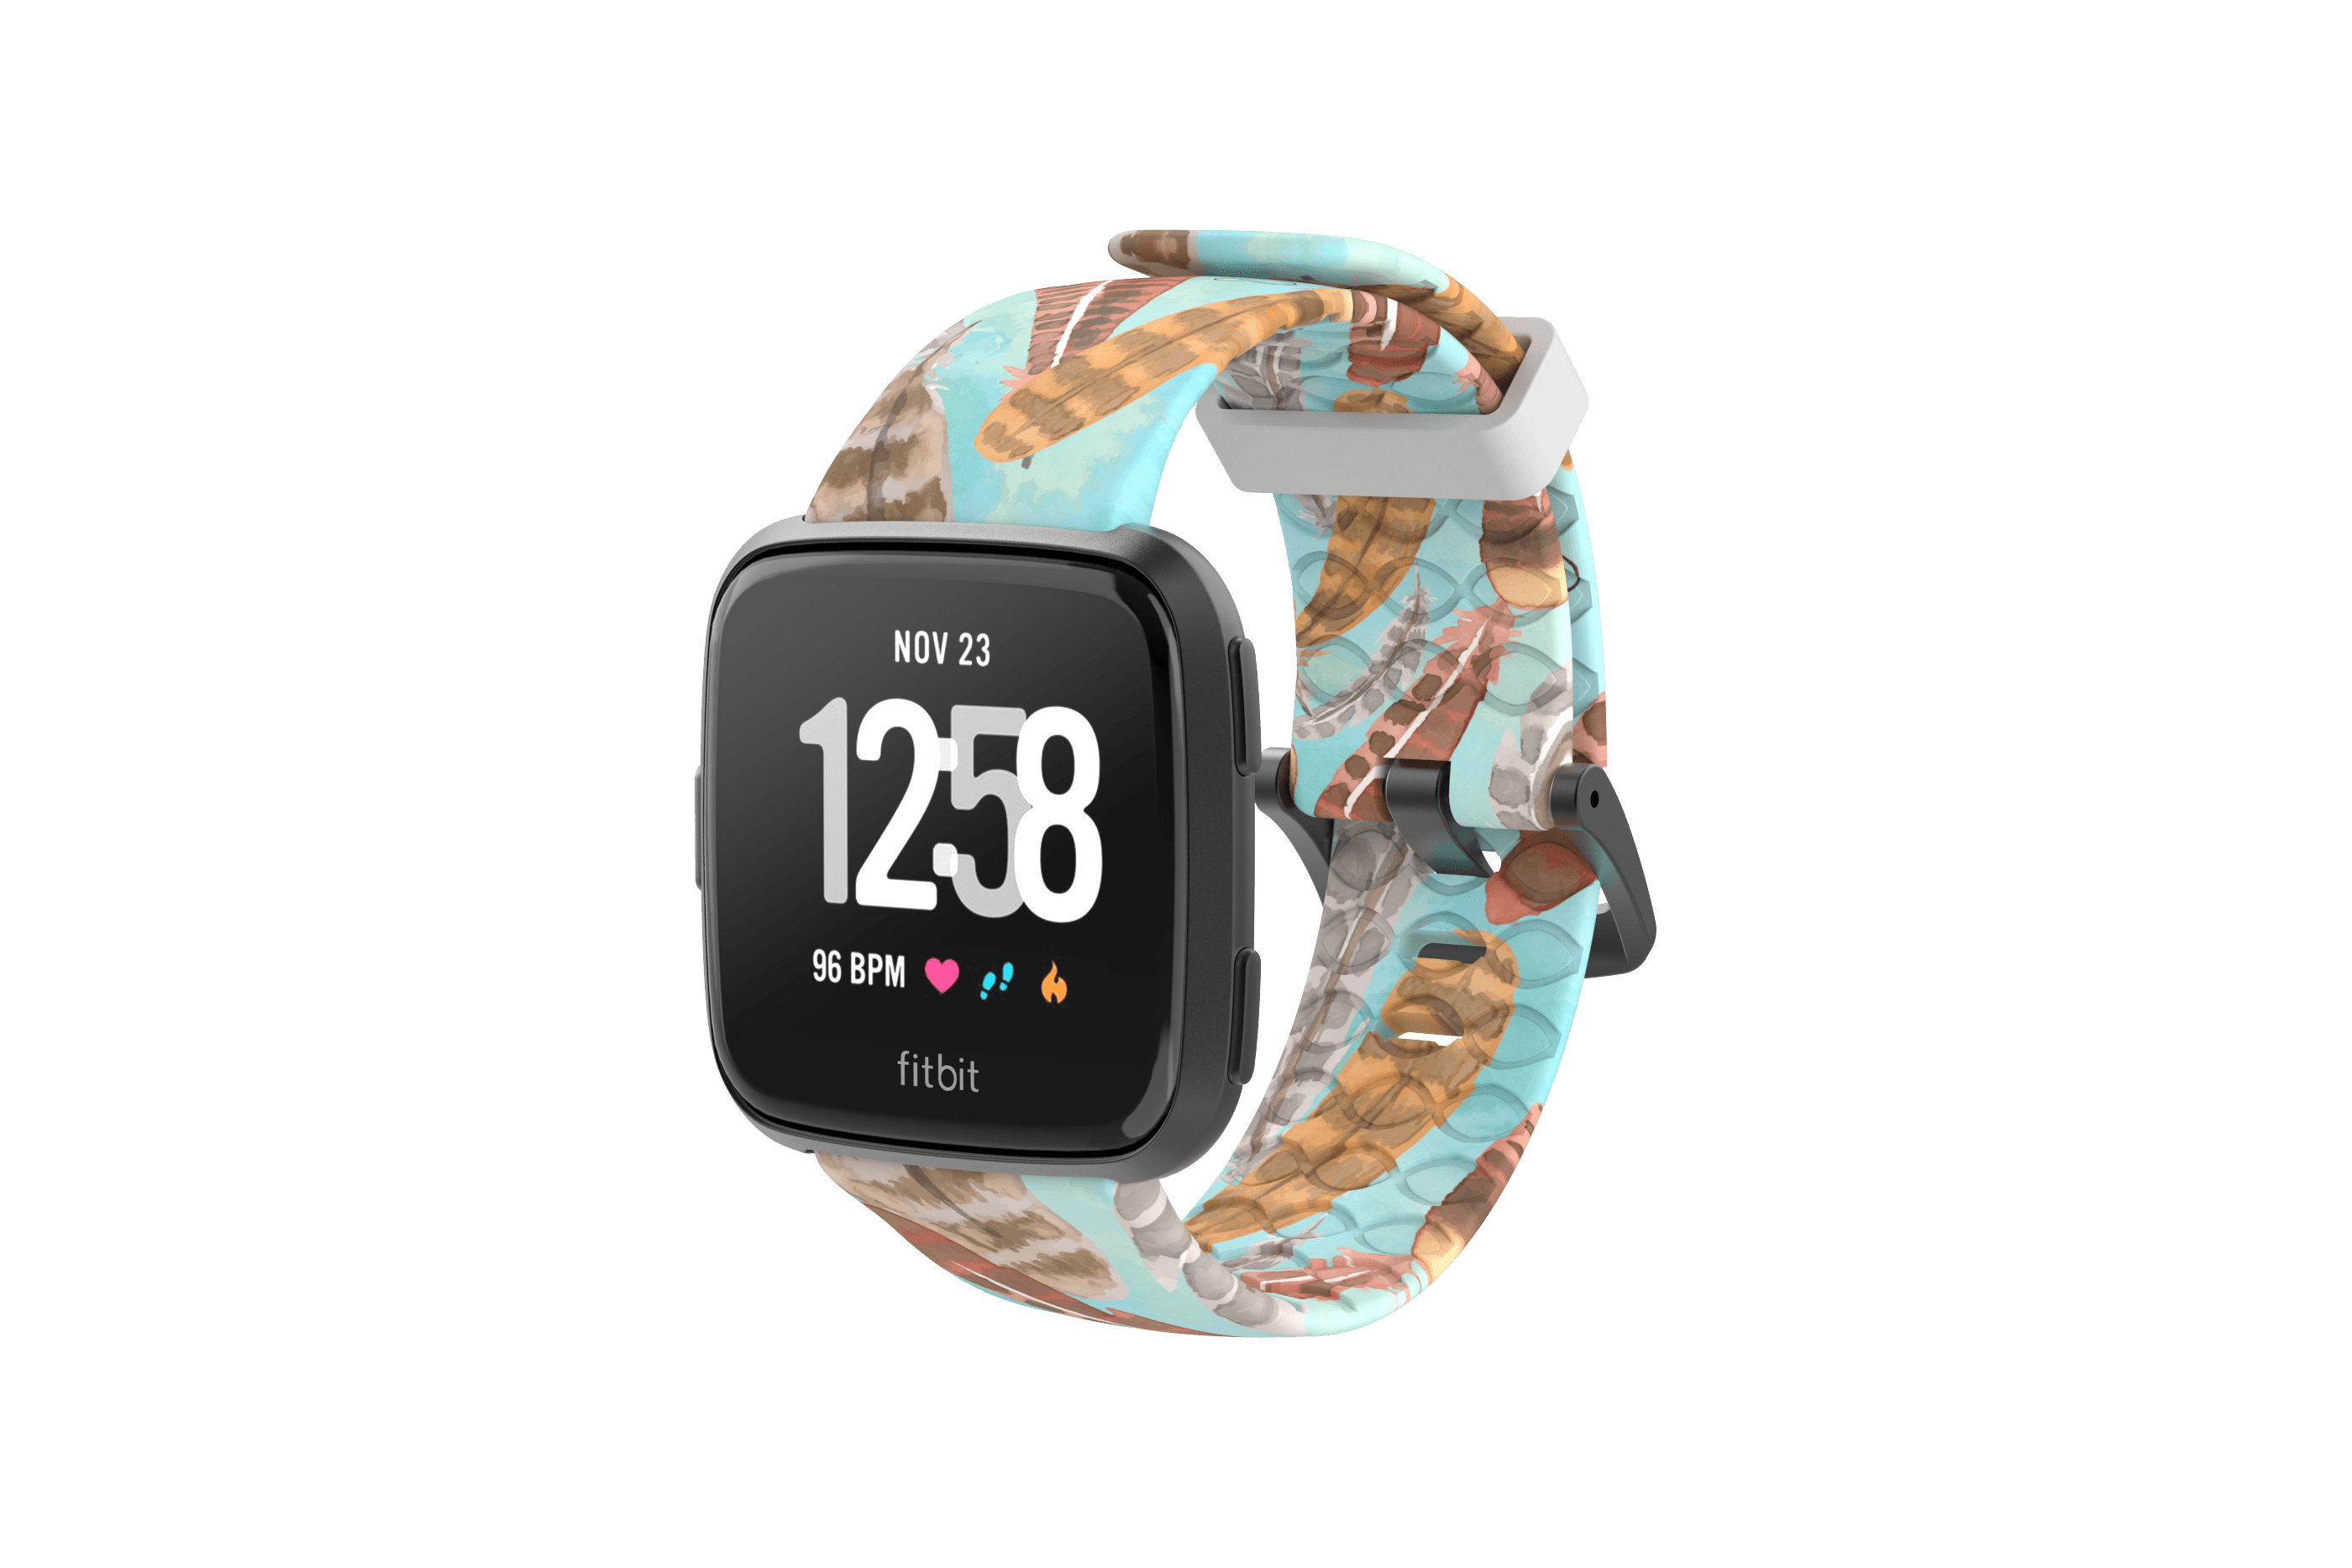 Brave - Katie Van Slyke Fitbit Versa Watch Band with gray hardware viewed front on